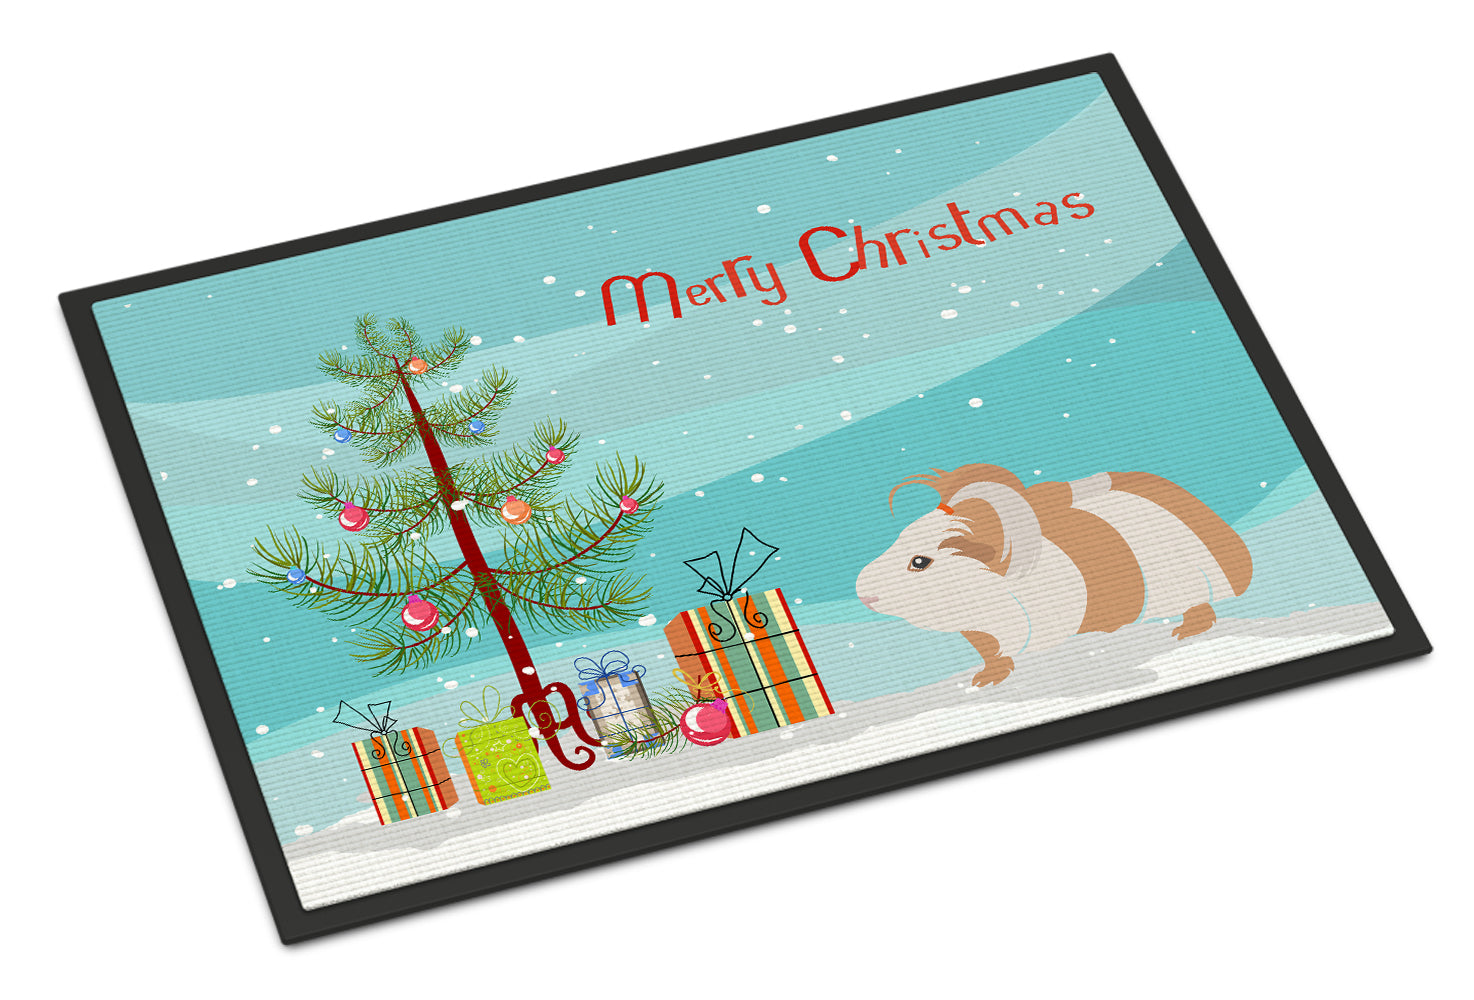 Silkie Guinea Pig Merry Christmas Indoor or Outdoor Mat 18x27 CK4446MAT by Caroline's Treasures